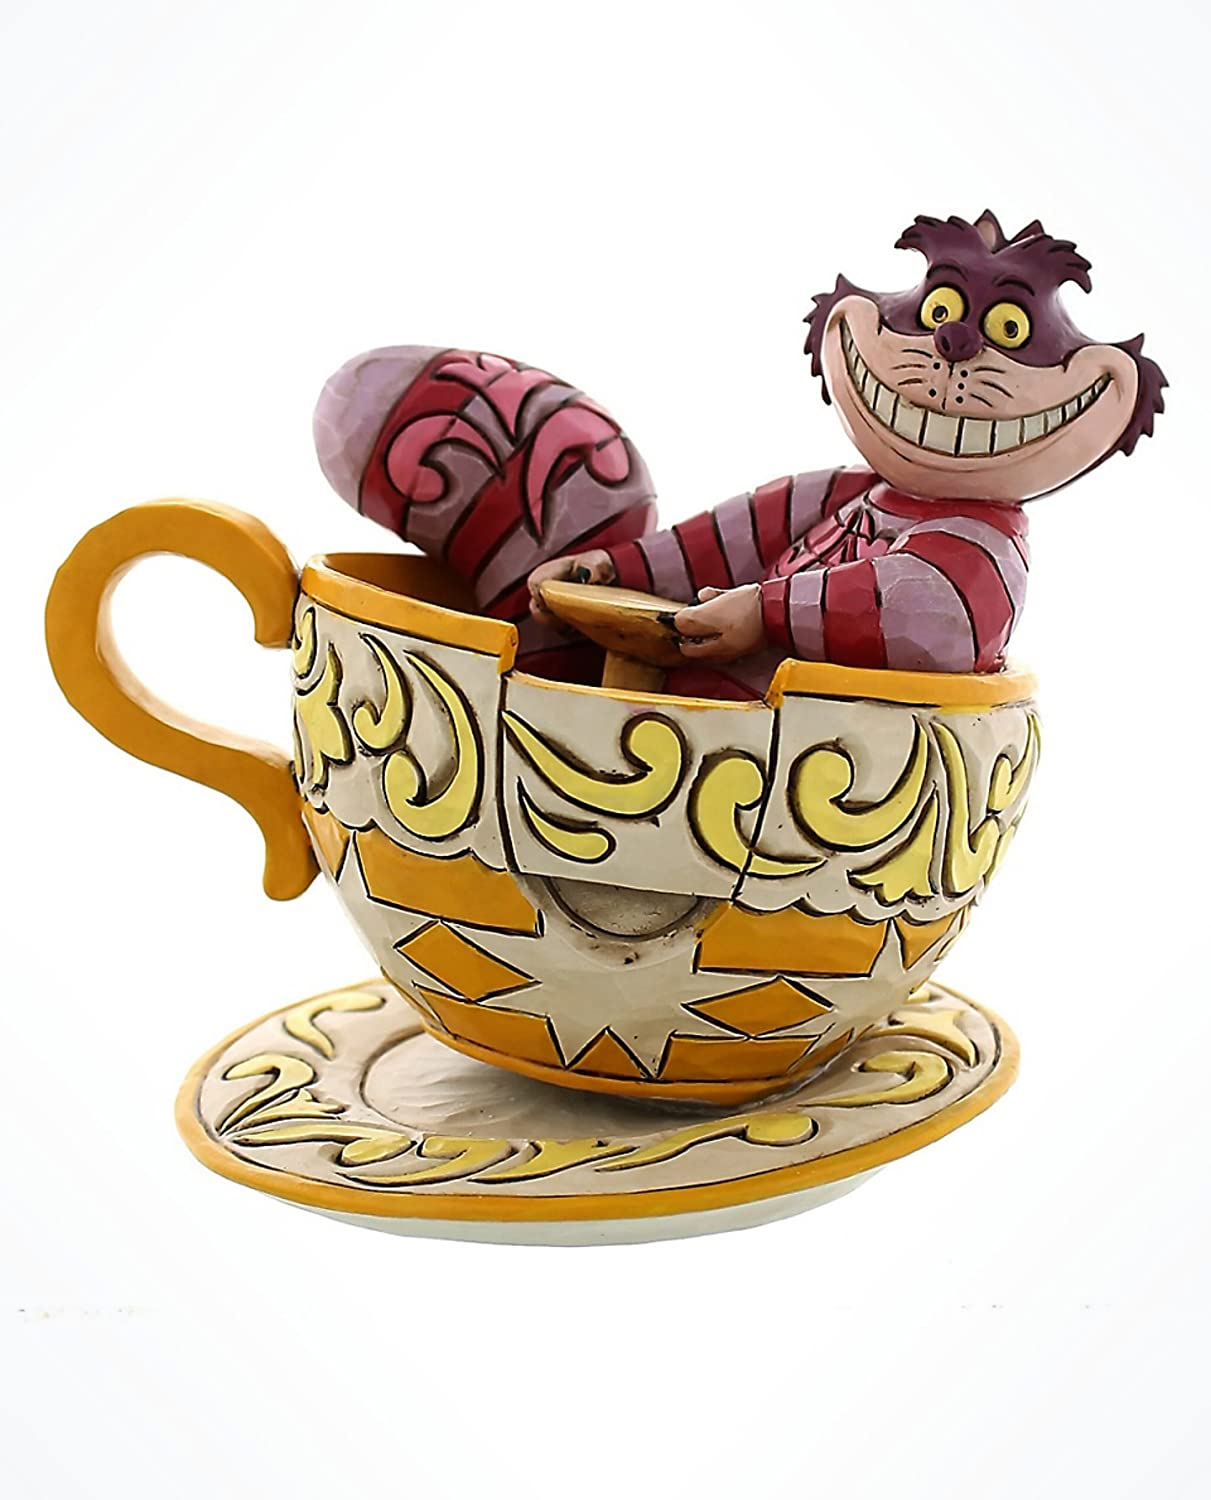 Disney Parks Cheshire Cat Tea Cup figurine by Jim shore